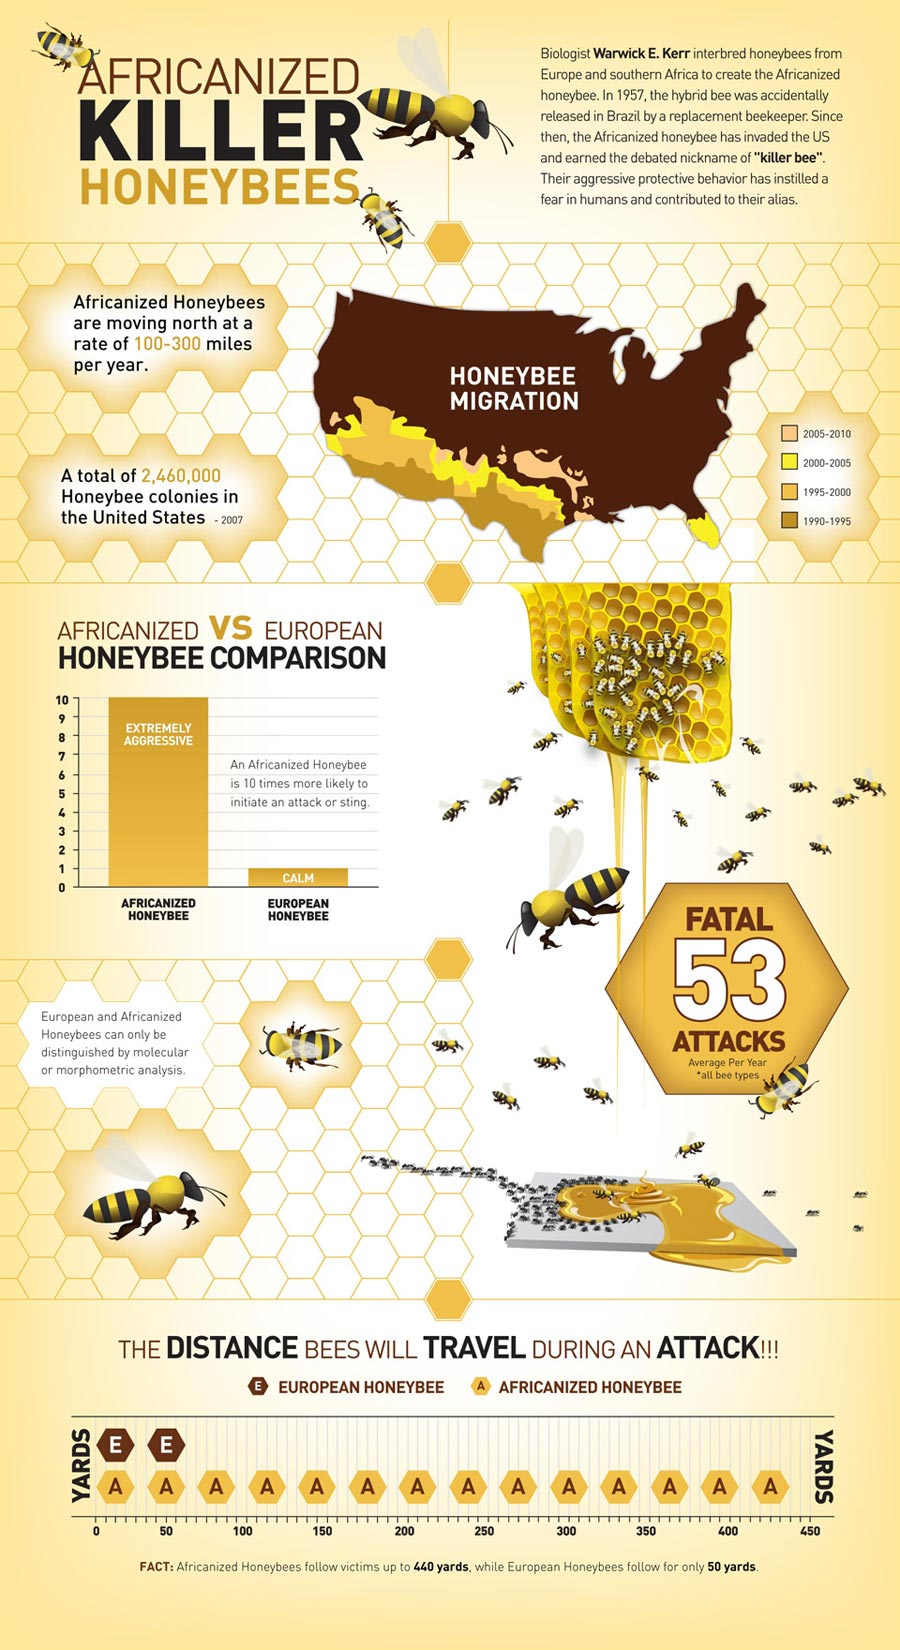 Pro Pacific Bee Removal - Africanized Honeybee Facts